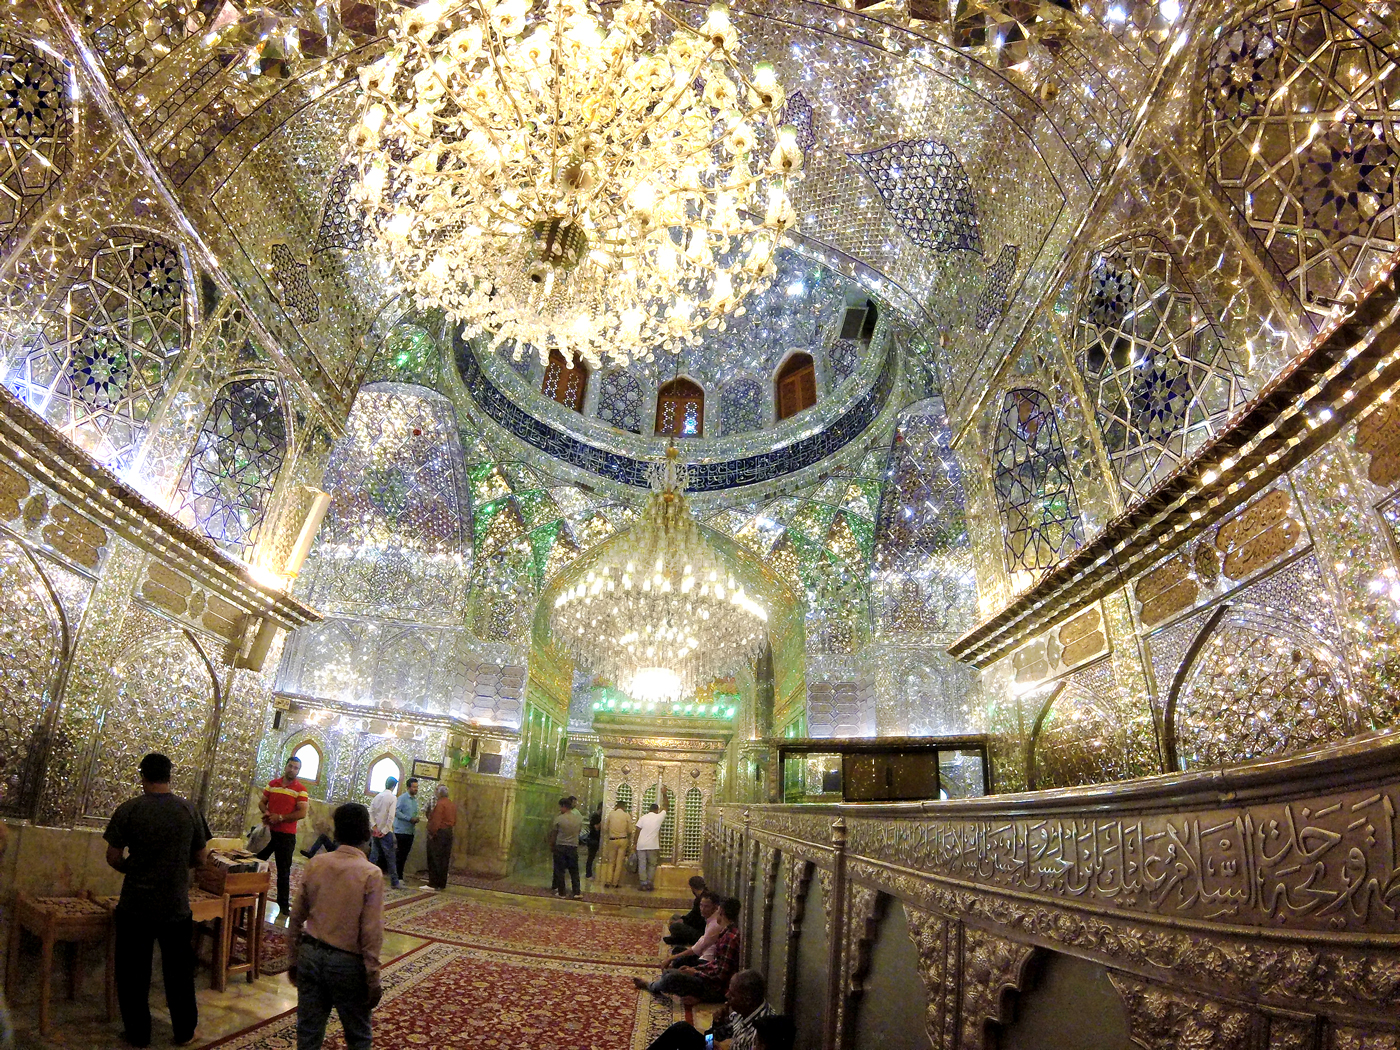 Voyage à vélo, traverser l'Iran à vélo, à la mosquée Shah Cheragh, à Shiraz, qui abritent la tombe des frères Amir Ahmad et Mir Muhammad, fils du septième imam chiite Musa al-Kazim. Cycling travel, biketouring, cycling Iran, at the Shah Cheragh Mosque in Shiraz, home to the graves of the brothers Amir Ahmad and Mir Muhammad, son of the seventh Shia Imam Musa al-Kazim.